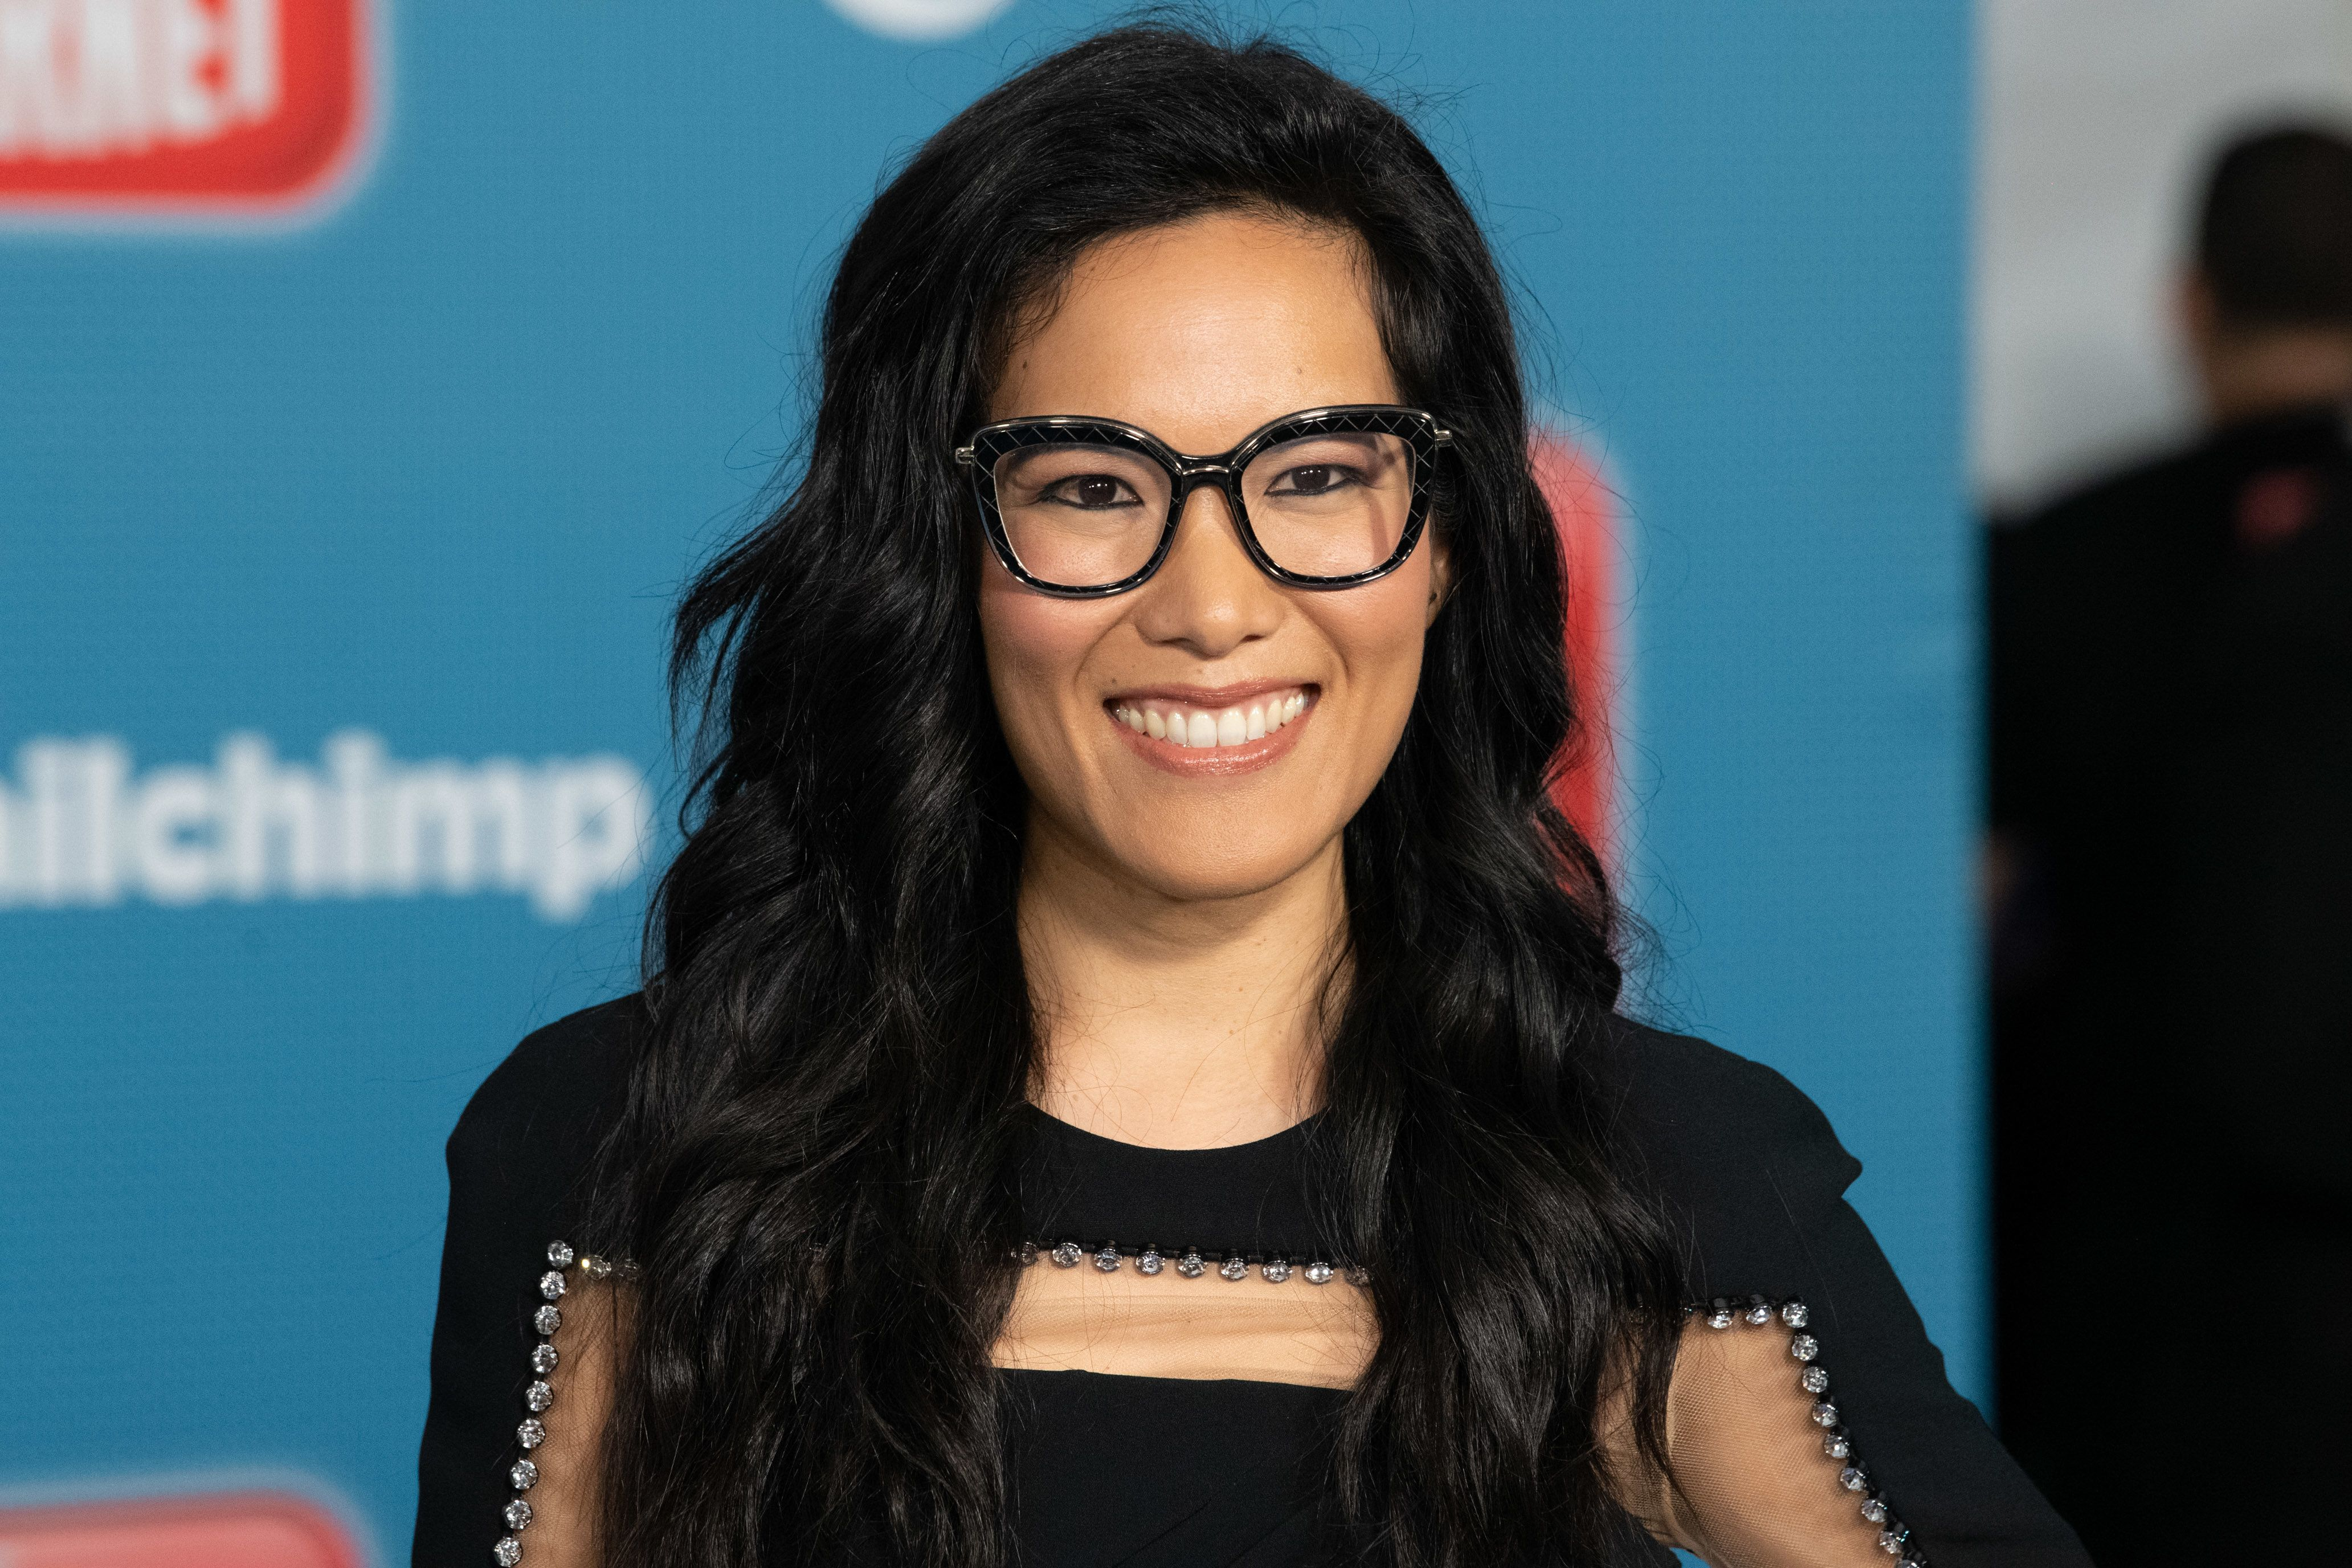 LOS ANGELES, CA - NOVEMBER 05:  Ali Wong attends the Premiere Of Disney's 'Ralph Breaks The Internet' on November 5, 2018 in Los Angeles, California.  (Photo by Earl Gibson III/WireImage,)